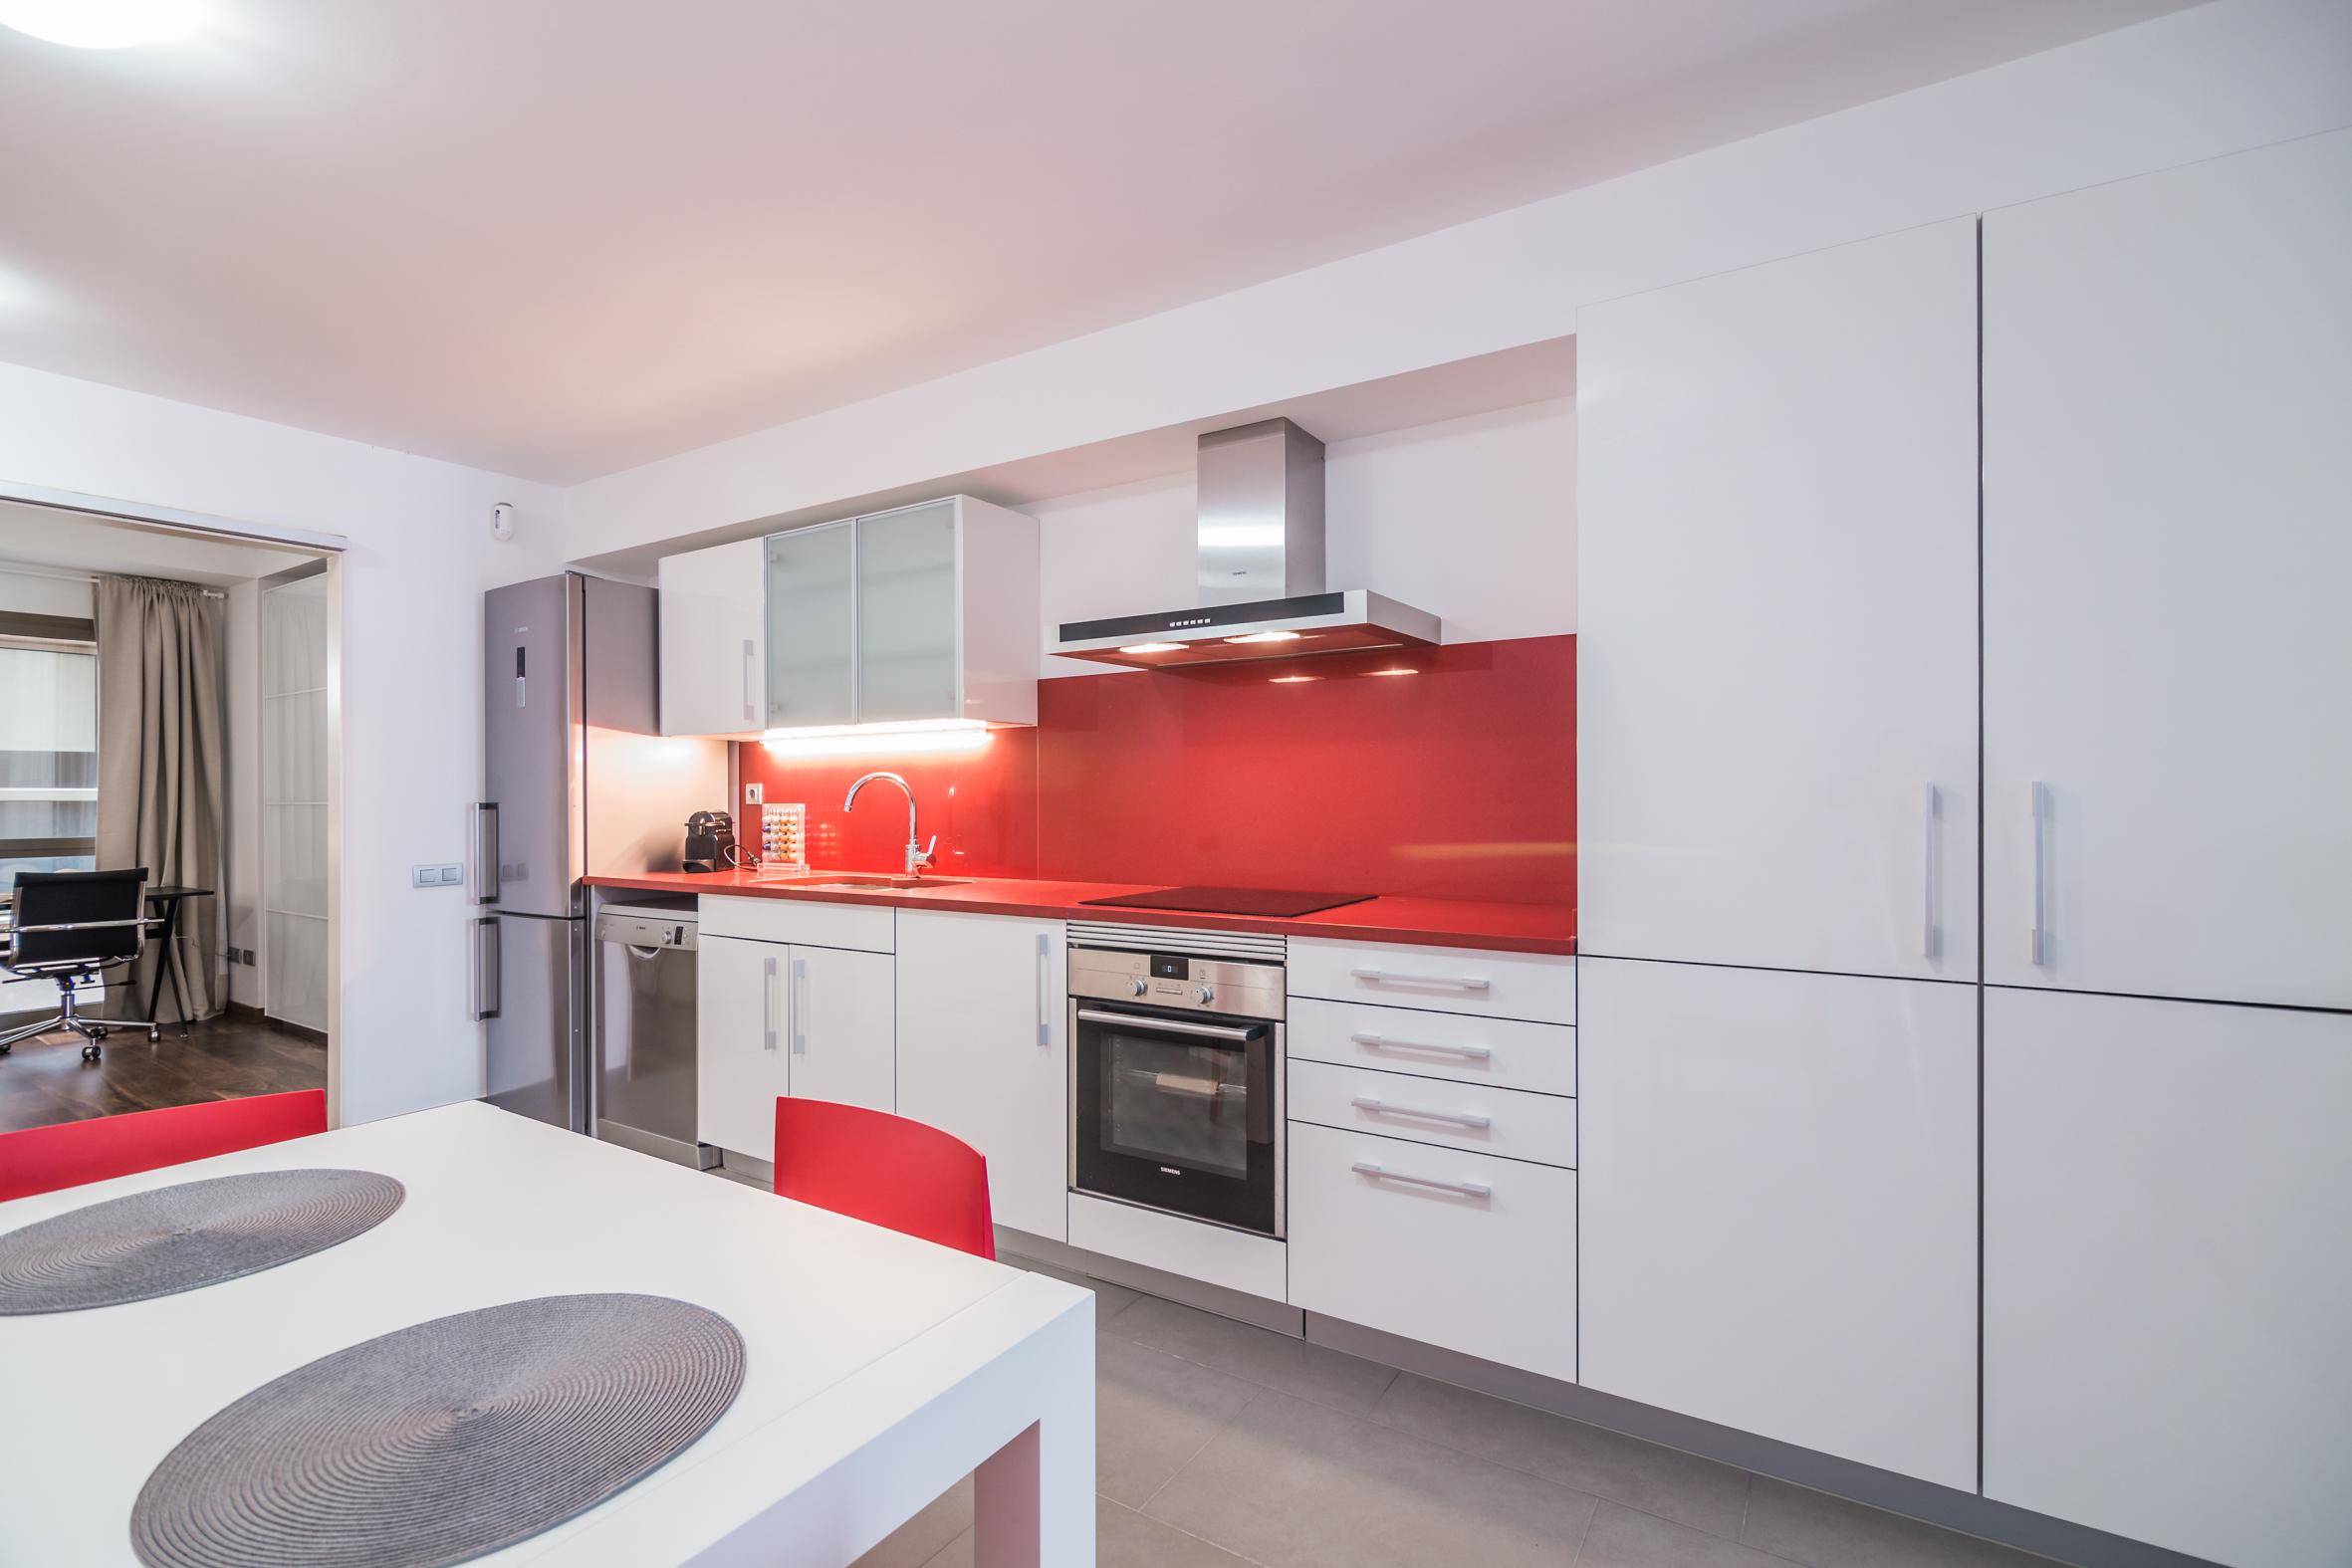 194056 Flat for sale in Ciutat Vella, Barri Gótic 14